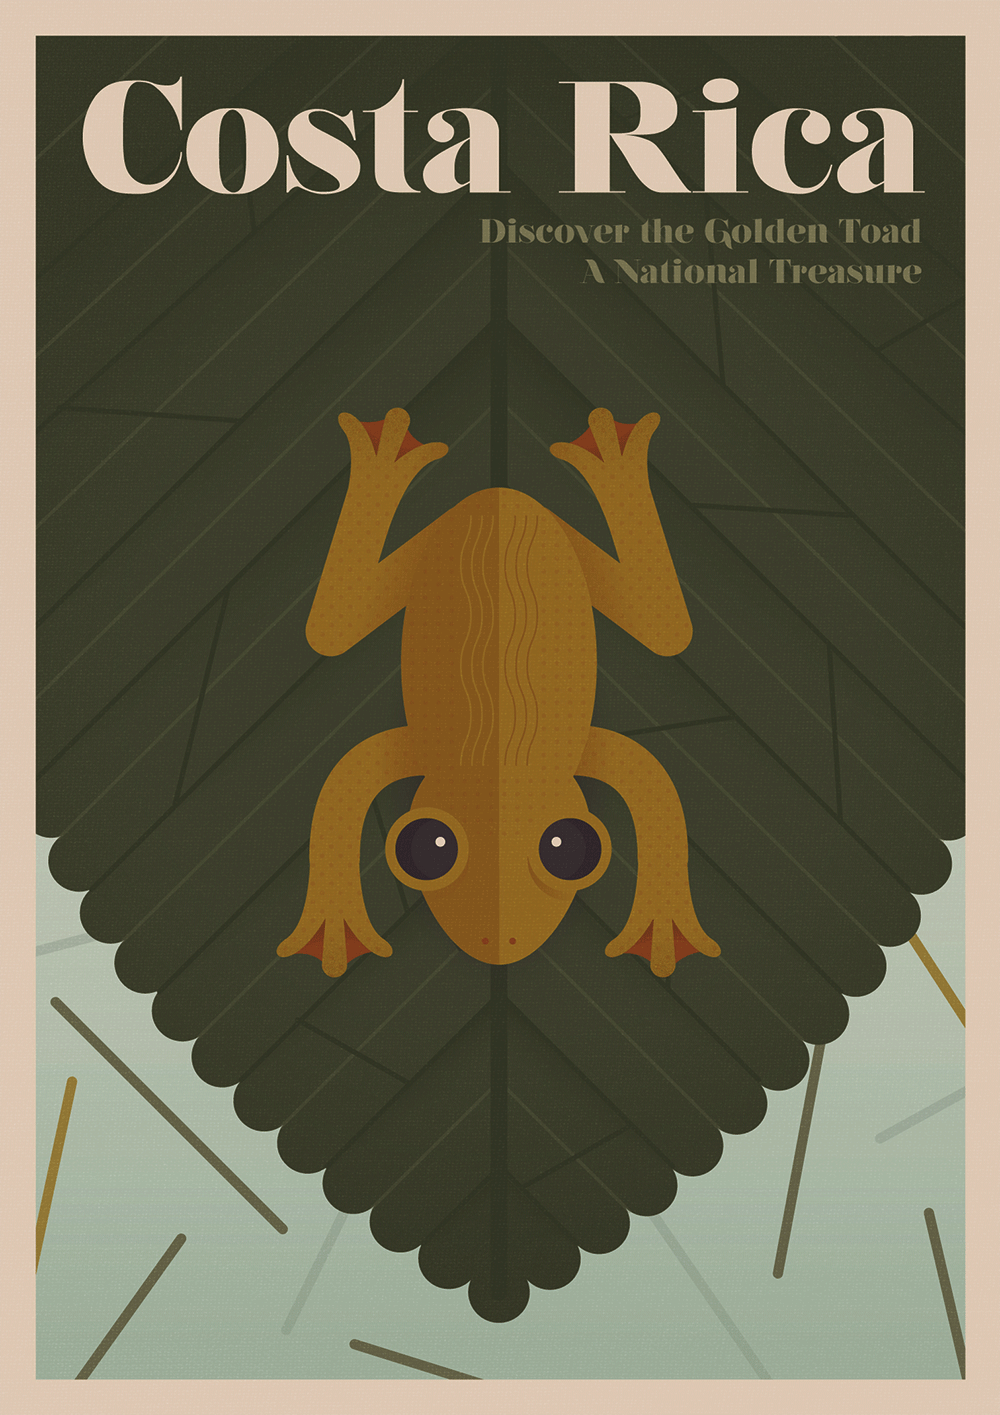 Discover the extinct animals lost to particular countries in these vintage-style posters